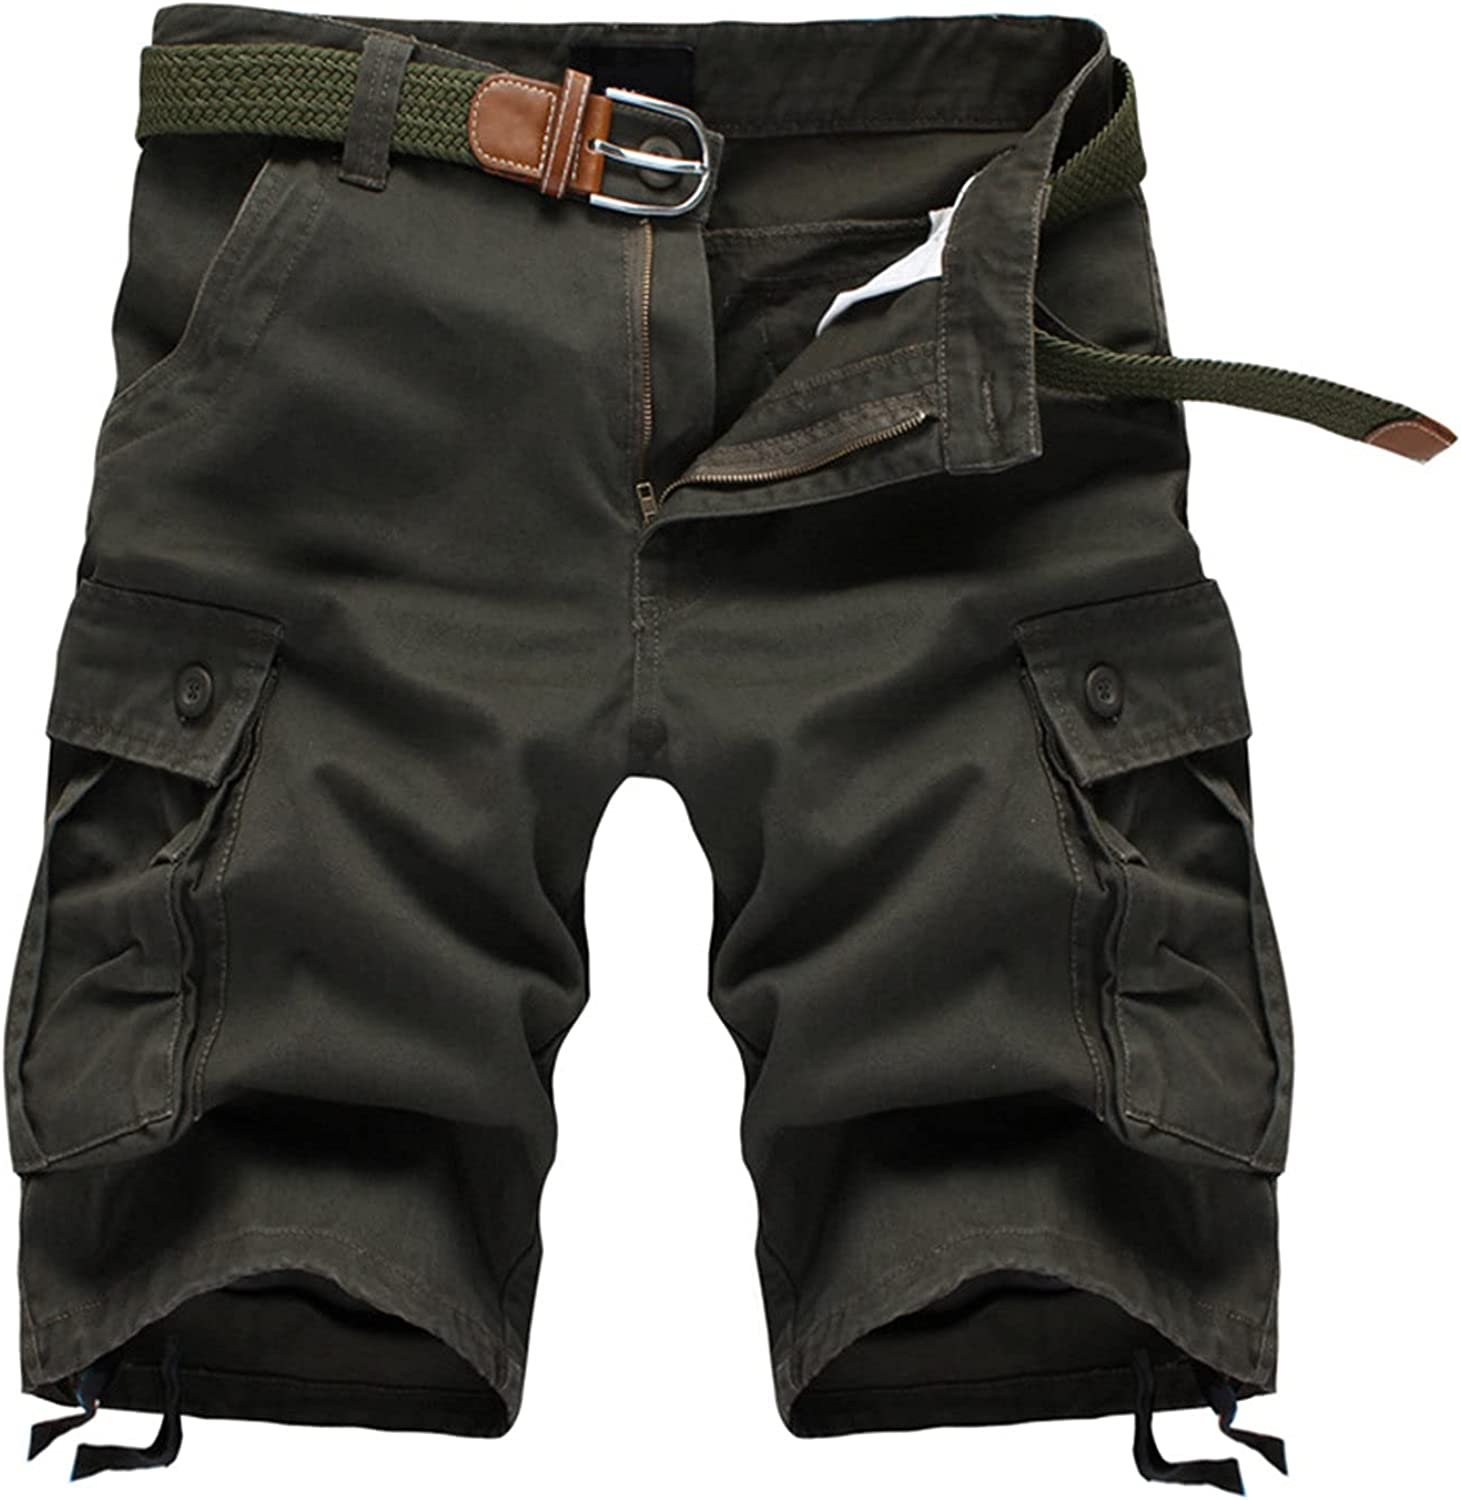 Mens Long Cargo Shorts Multi Pockets Durable Baggy Work Short-Pant Outdoor Cotton Straight Relaxed Fit Casual Short